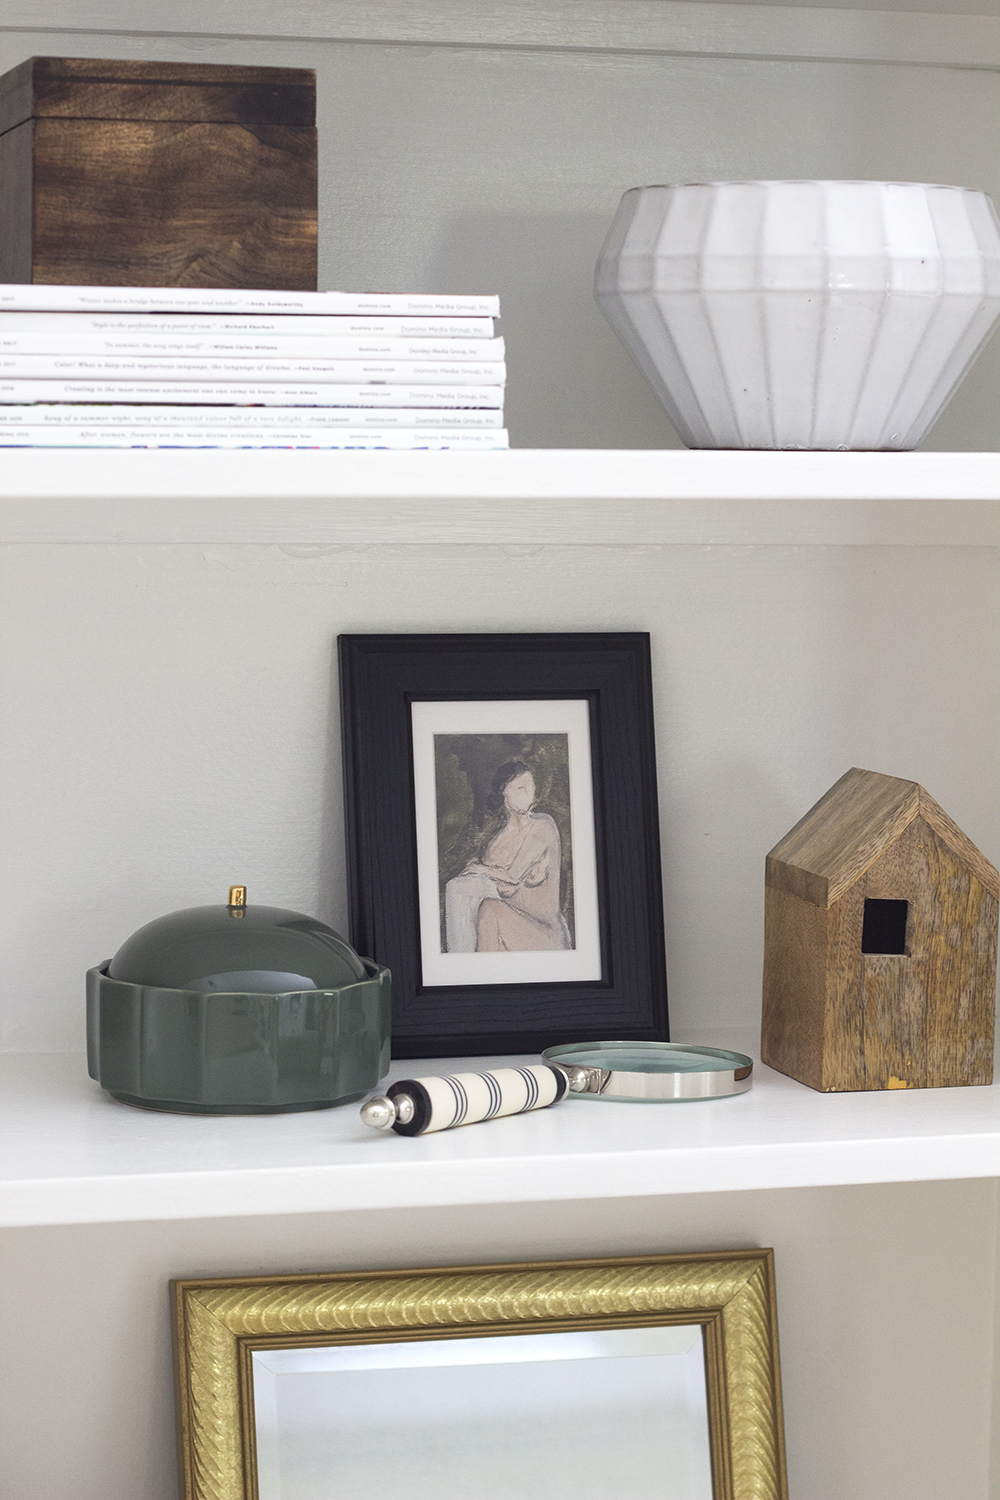 Interiors & Styling Archives - Room for Tuesday